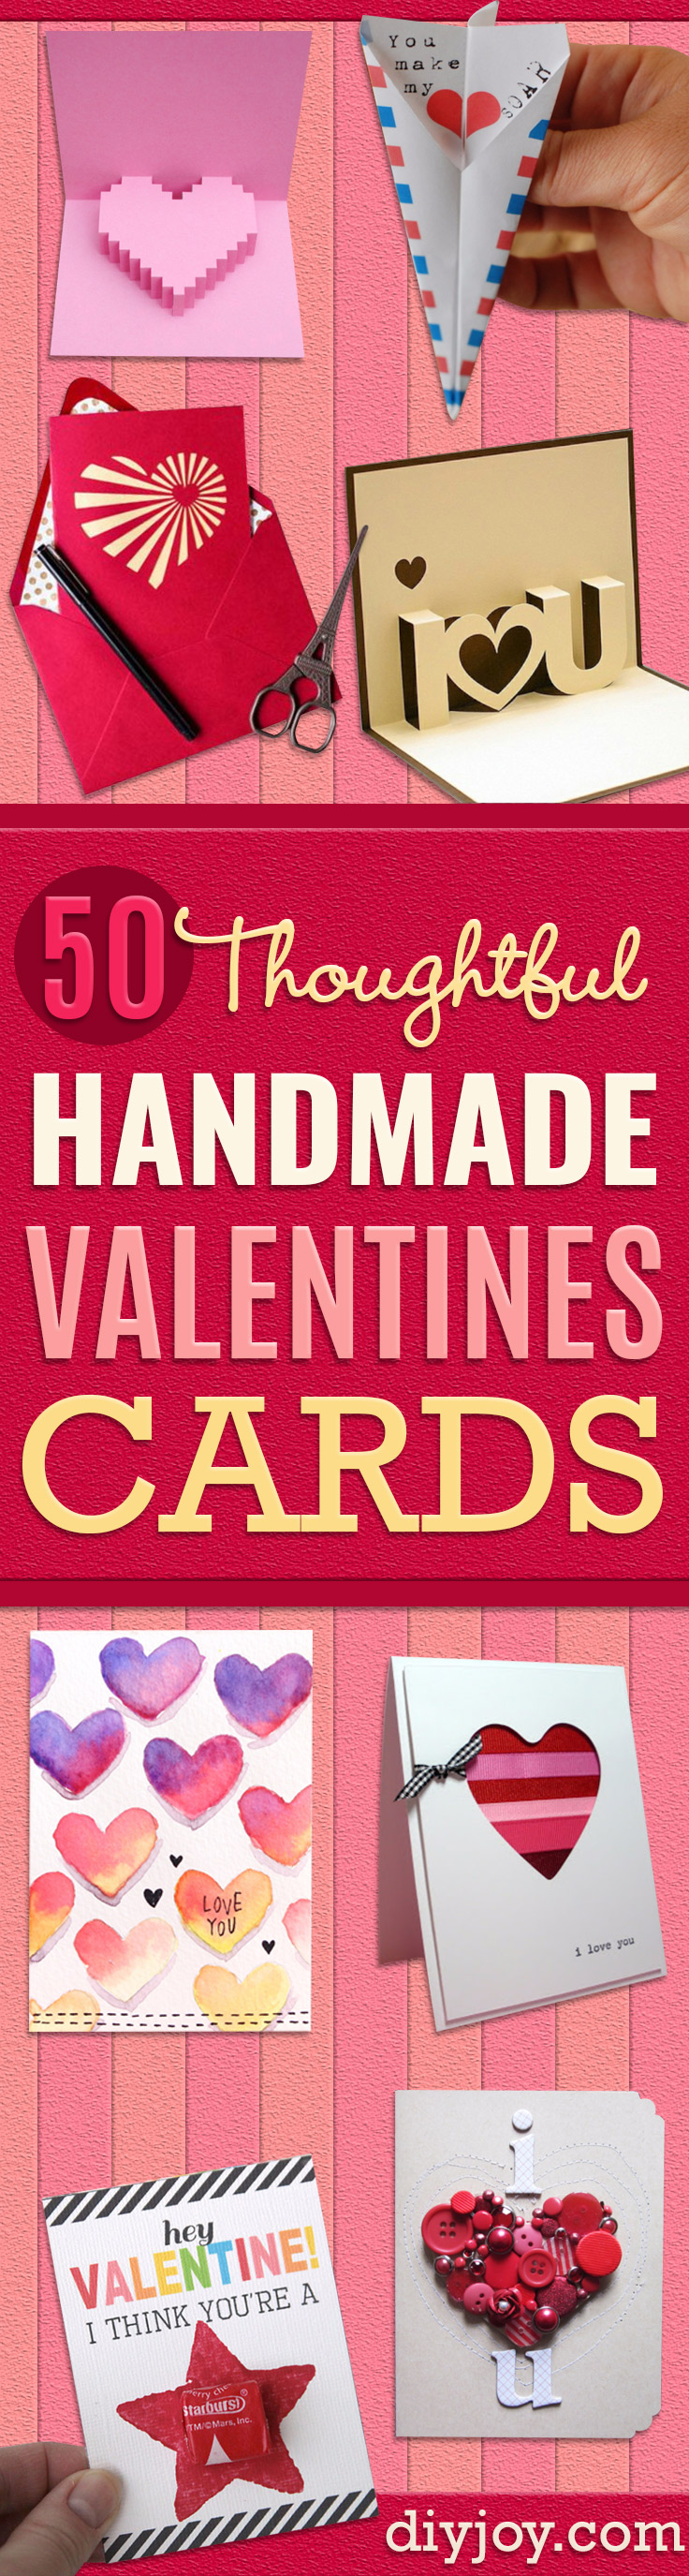 50 thoughtful handmade valentines cards